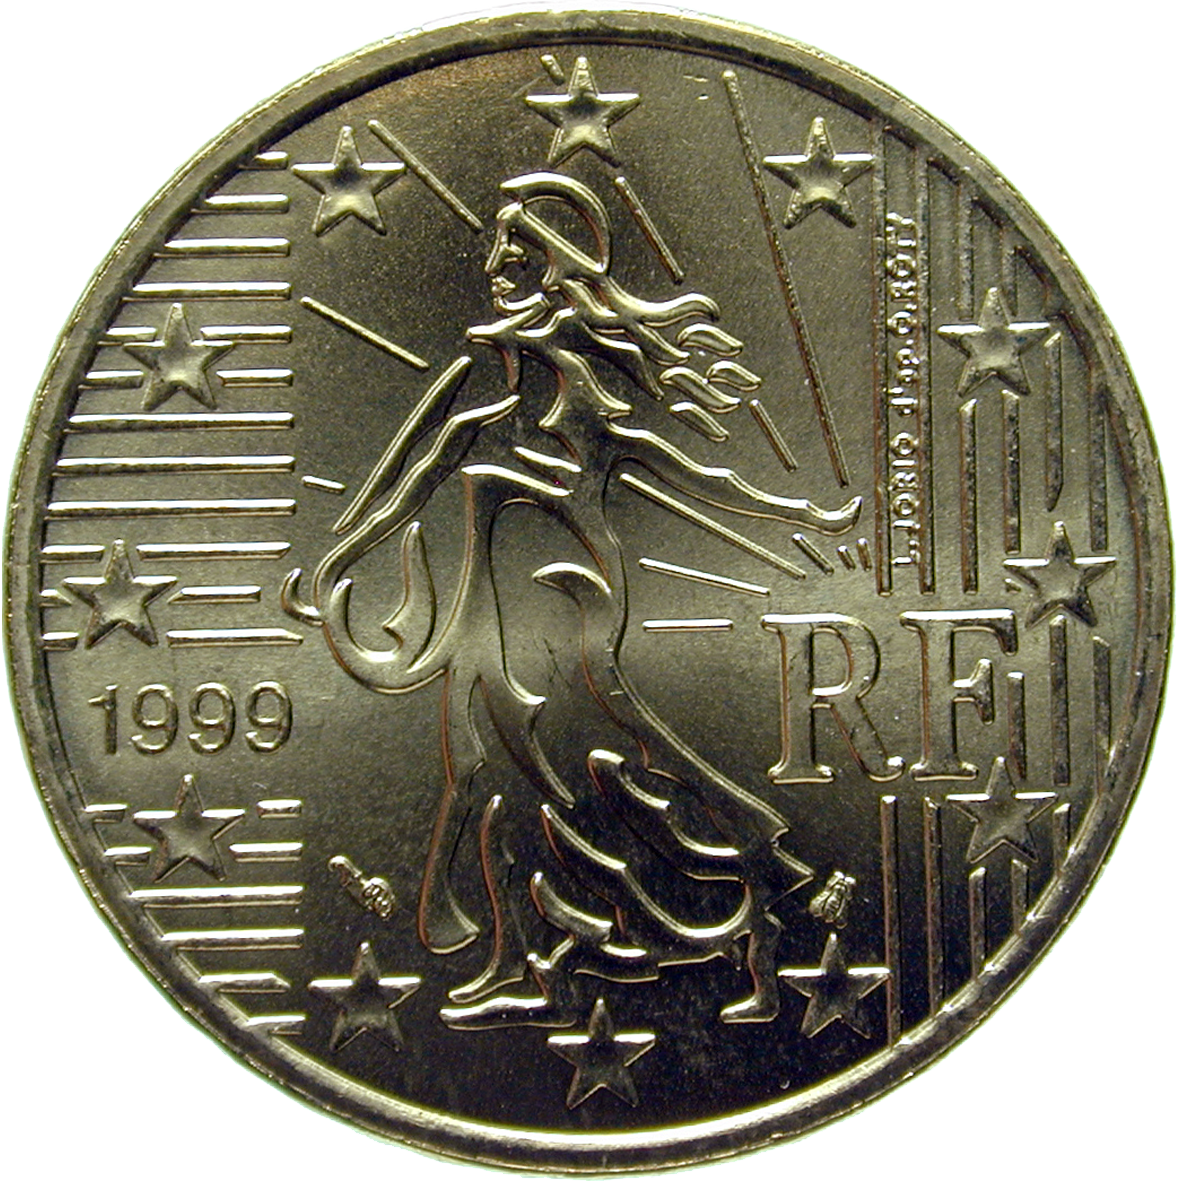 Republic of France, 50 Euro Cent 1999 (reverse)